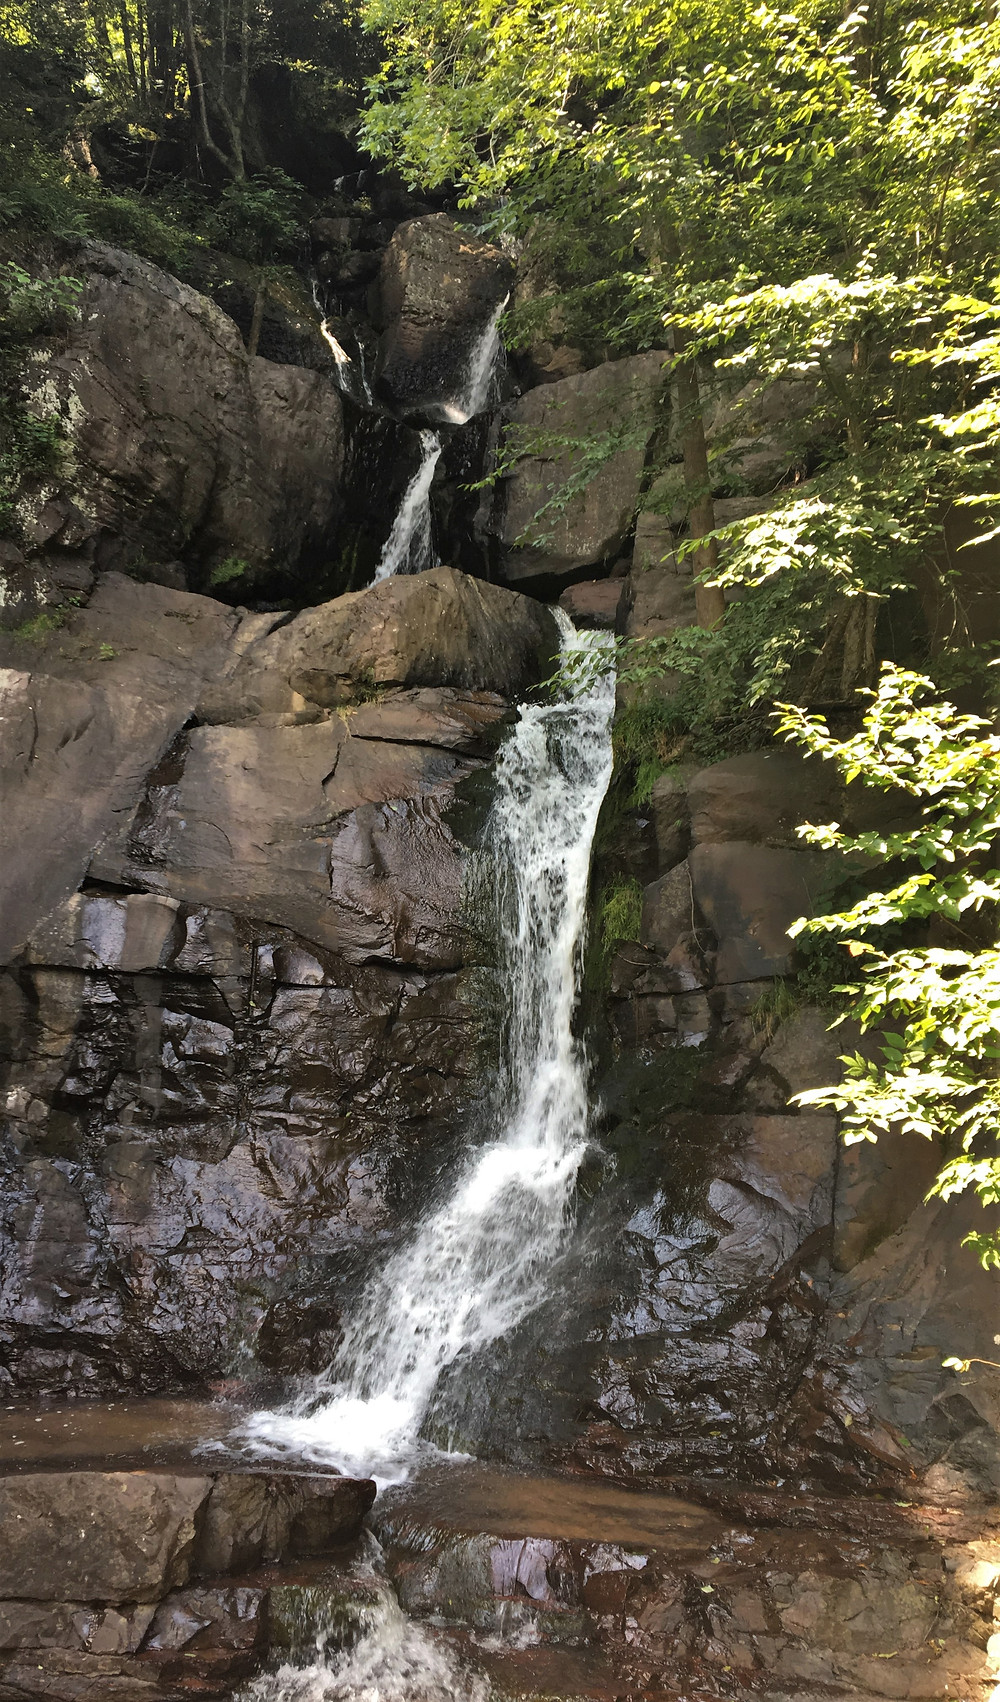 Waterfall in Lehigh Gorge State Park